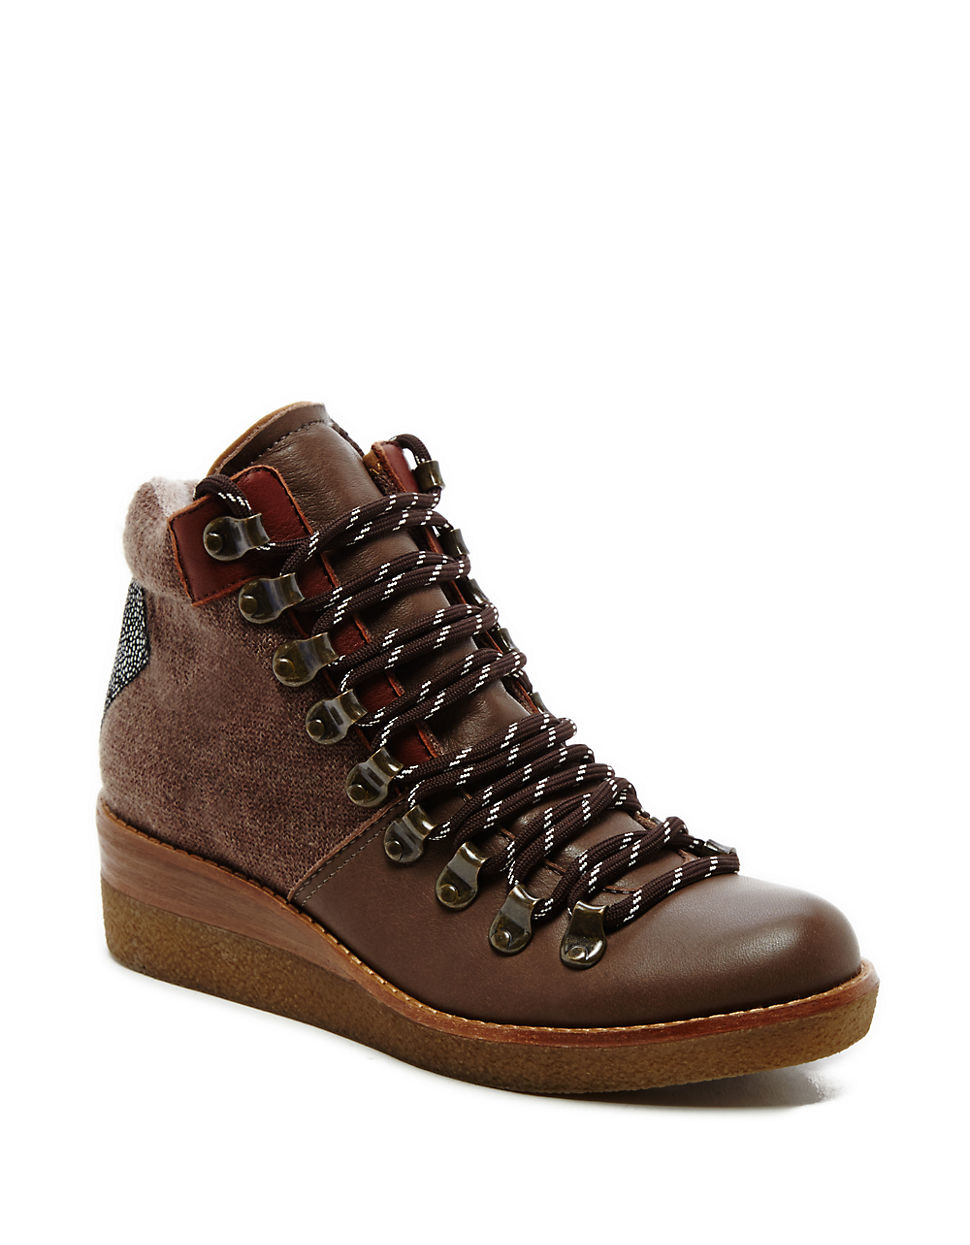 dolce vita sirena leather wedge boots in multicolor lyst